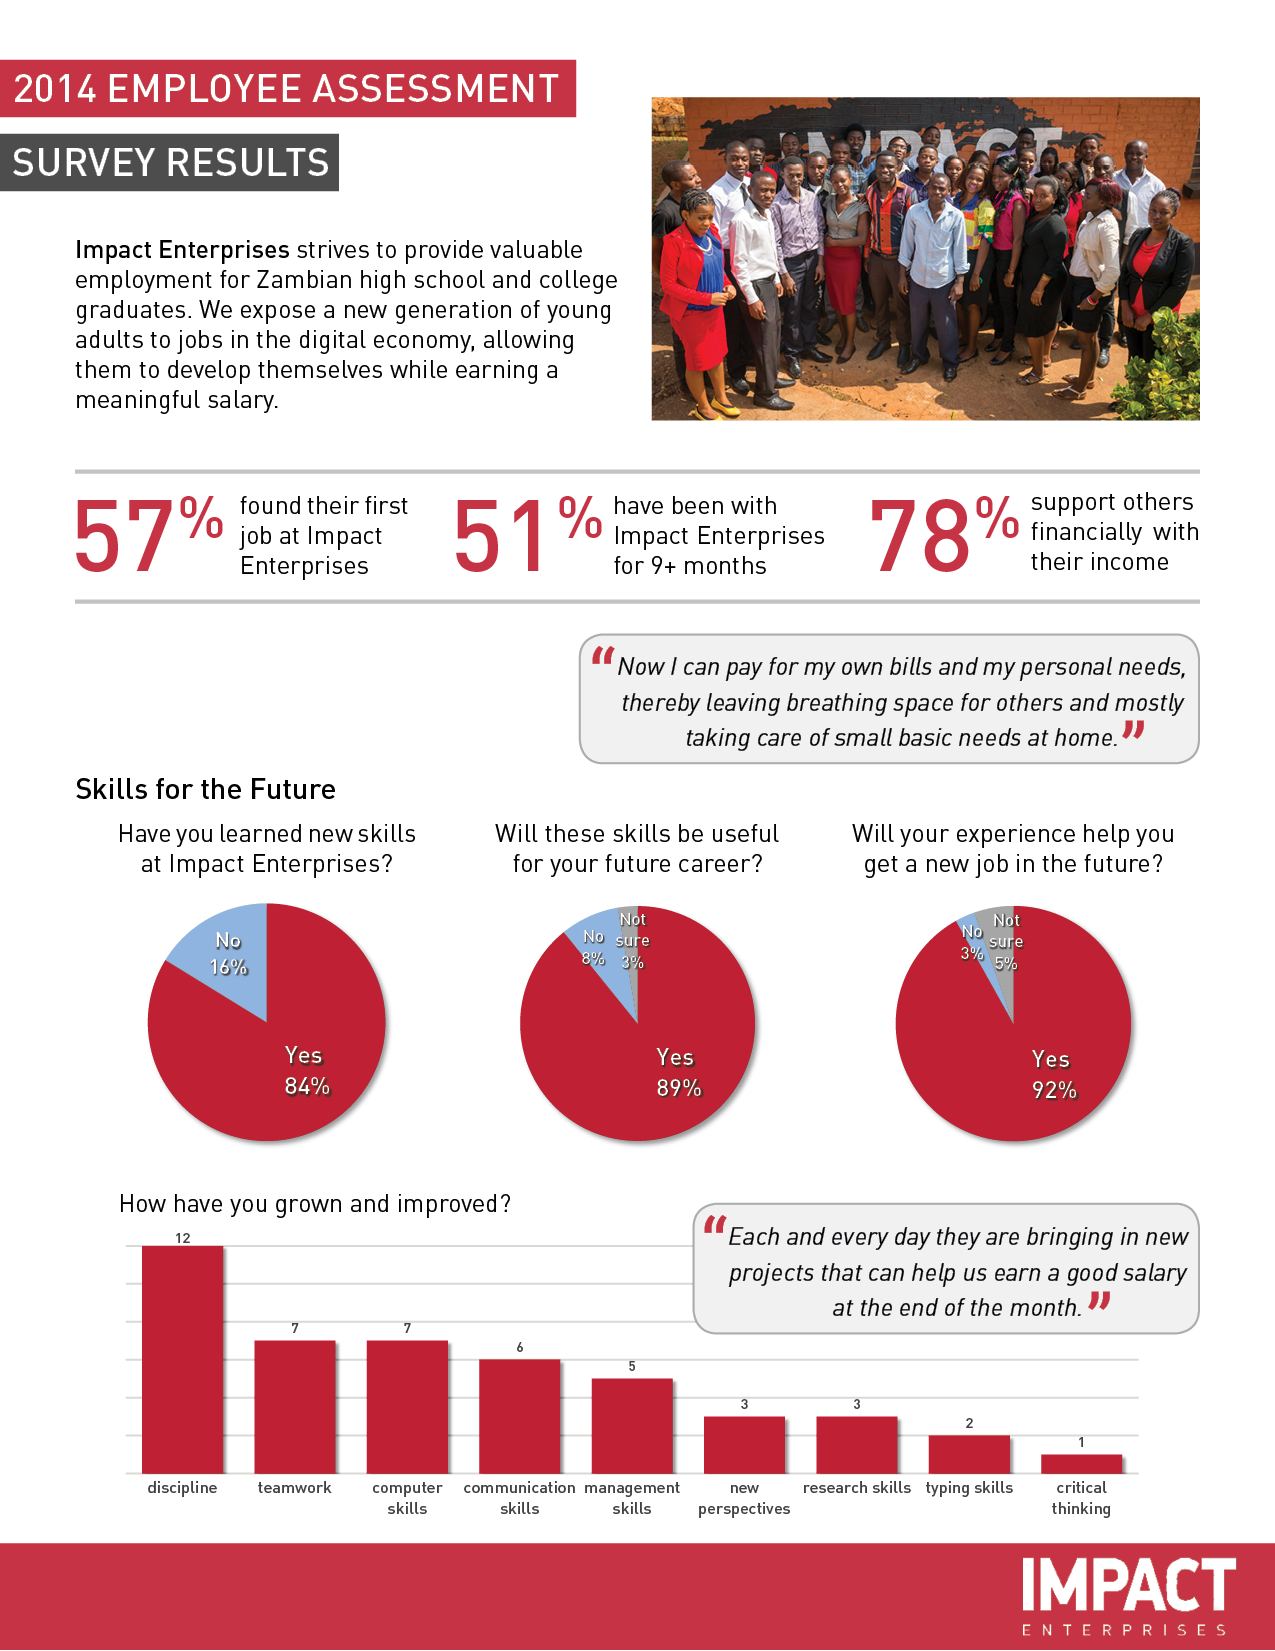 impact survey results 2014